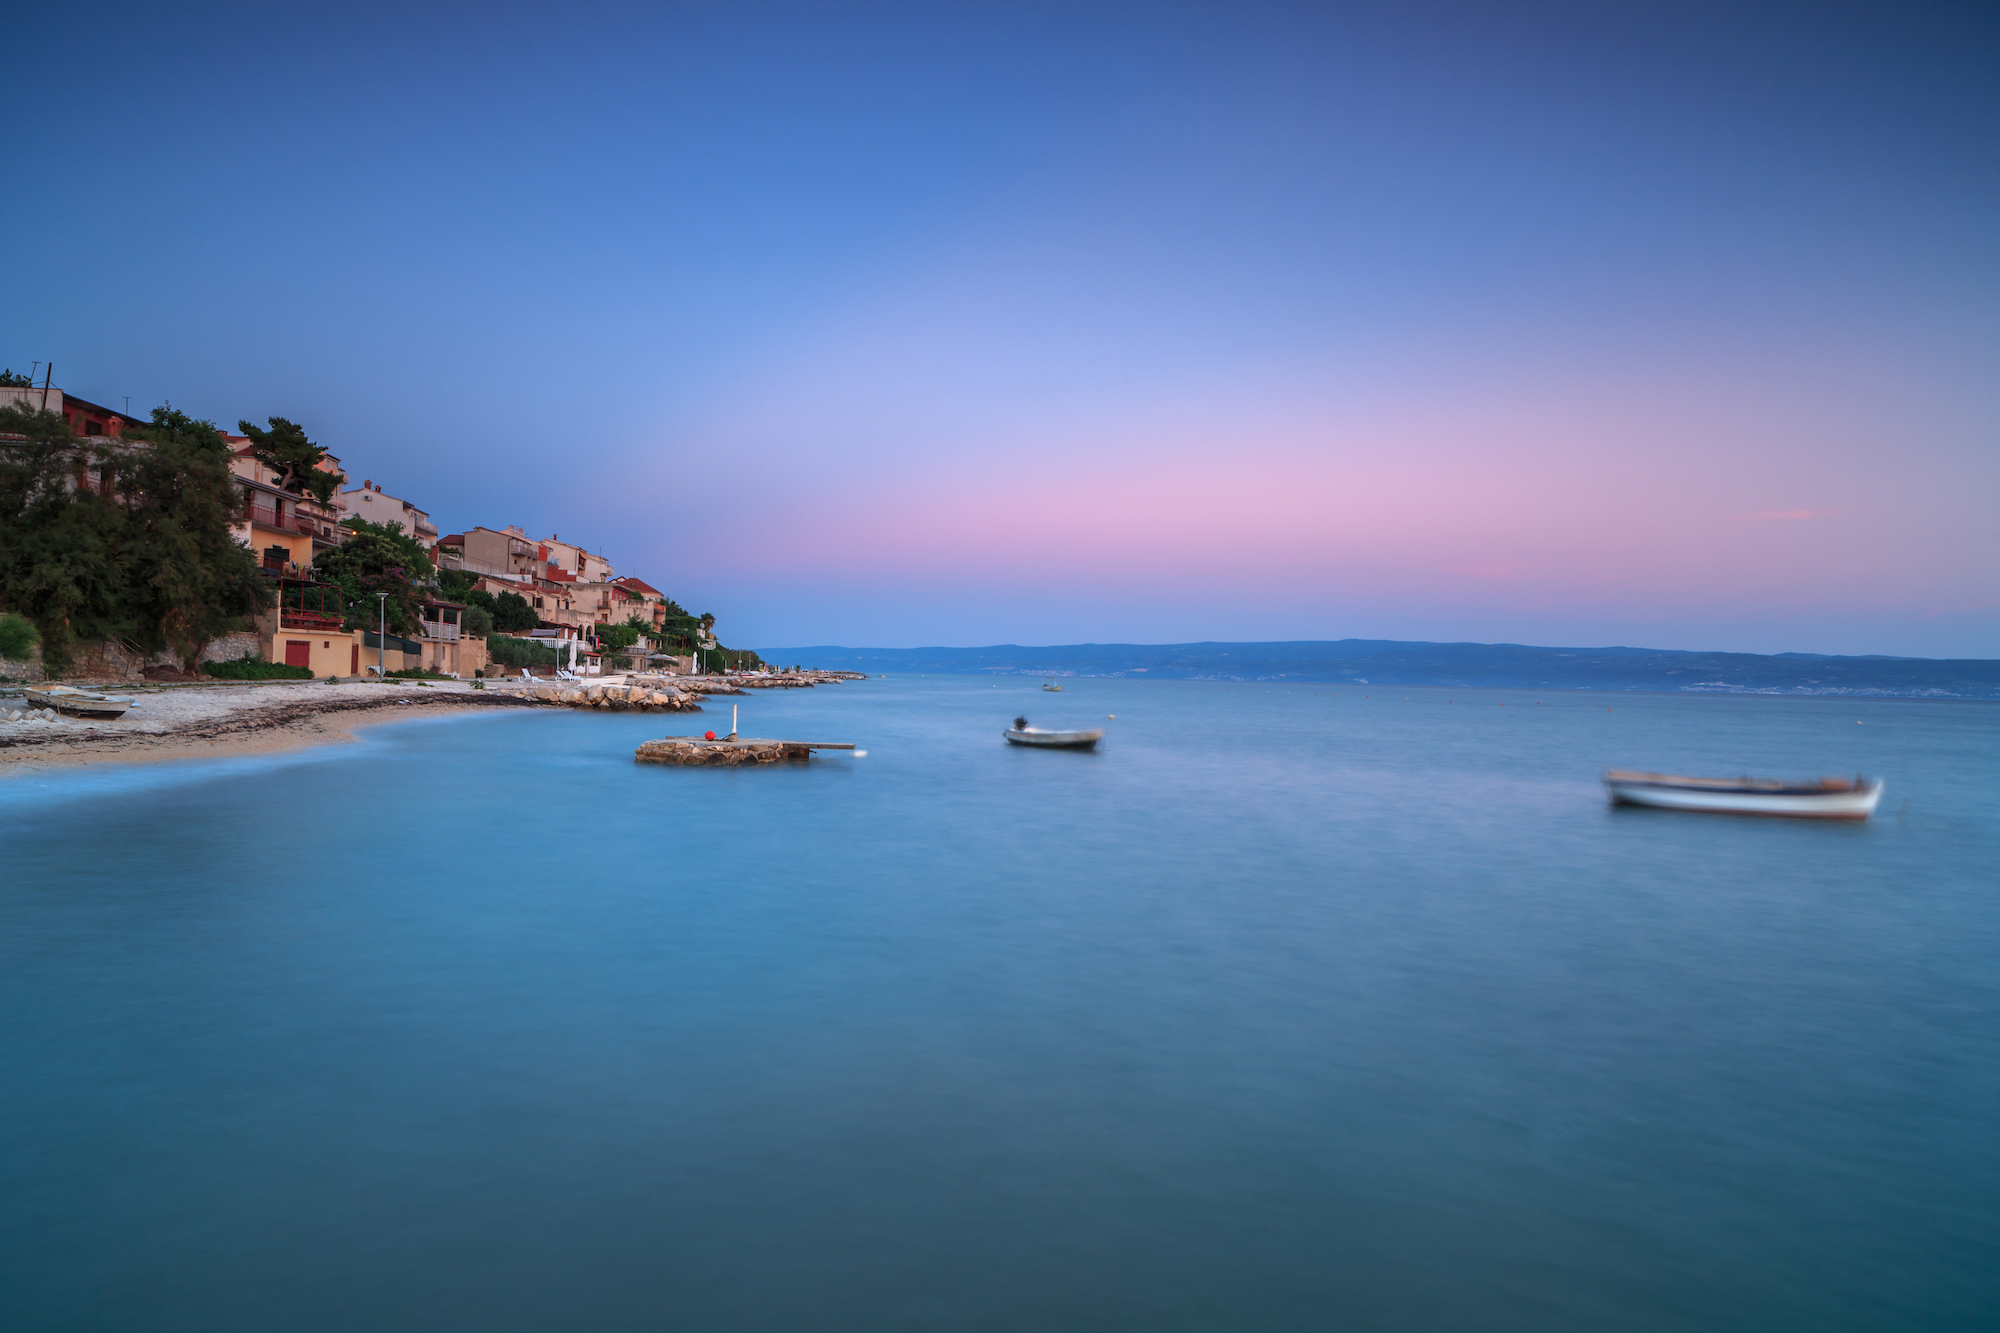 Coastline view with moving boats in Adriatic sea example image 1